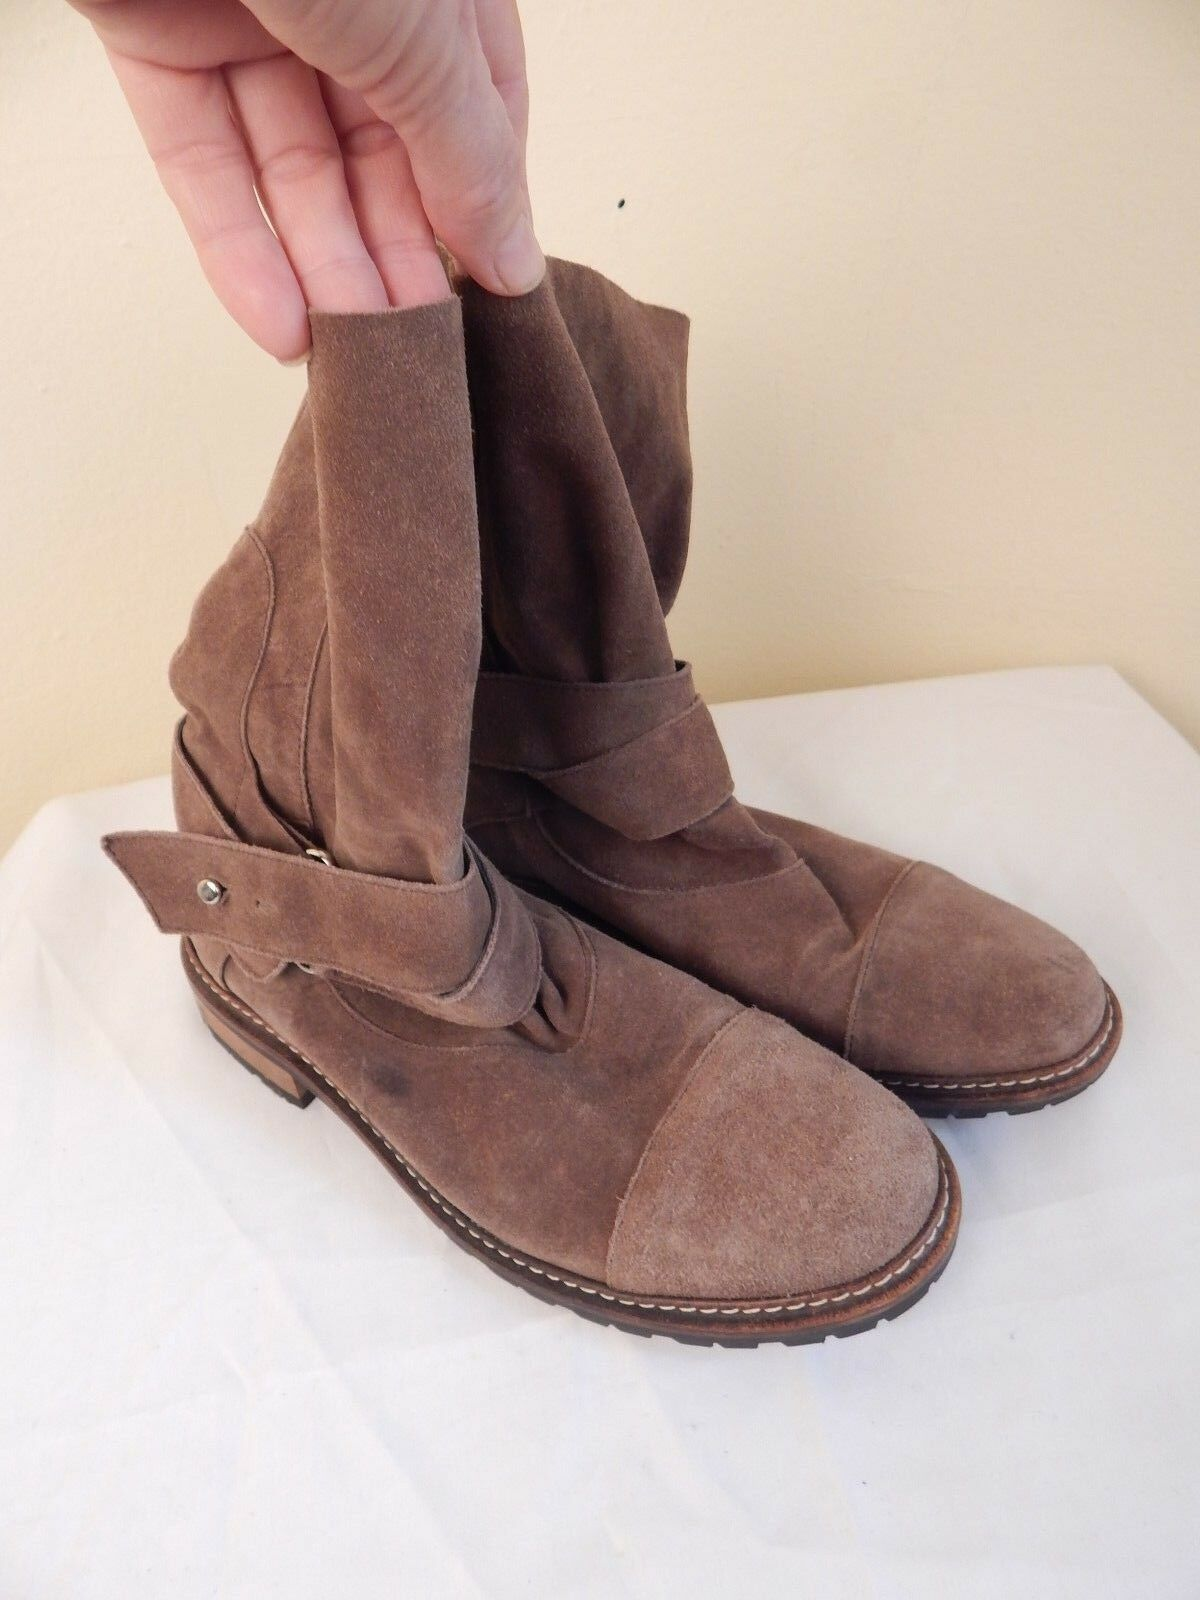 Womens suede boots lavorazione, size 39, wood heel, excellent condition, italy